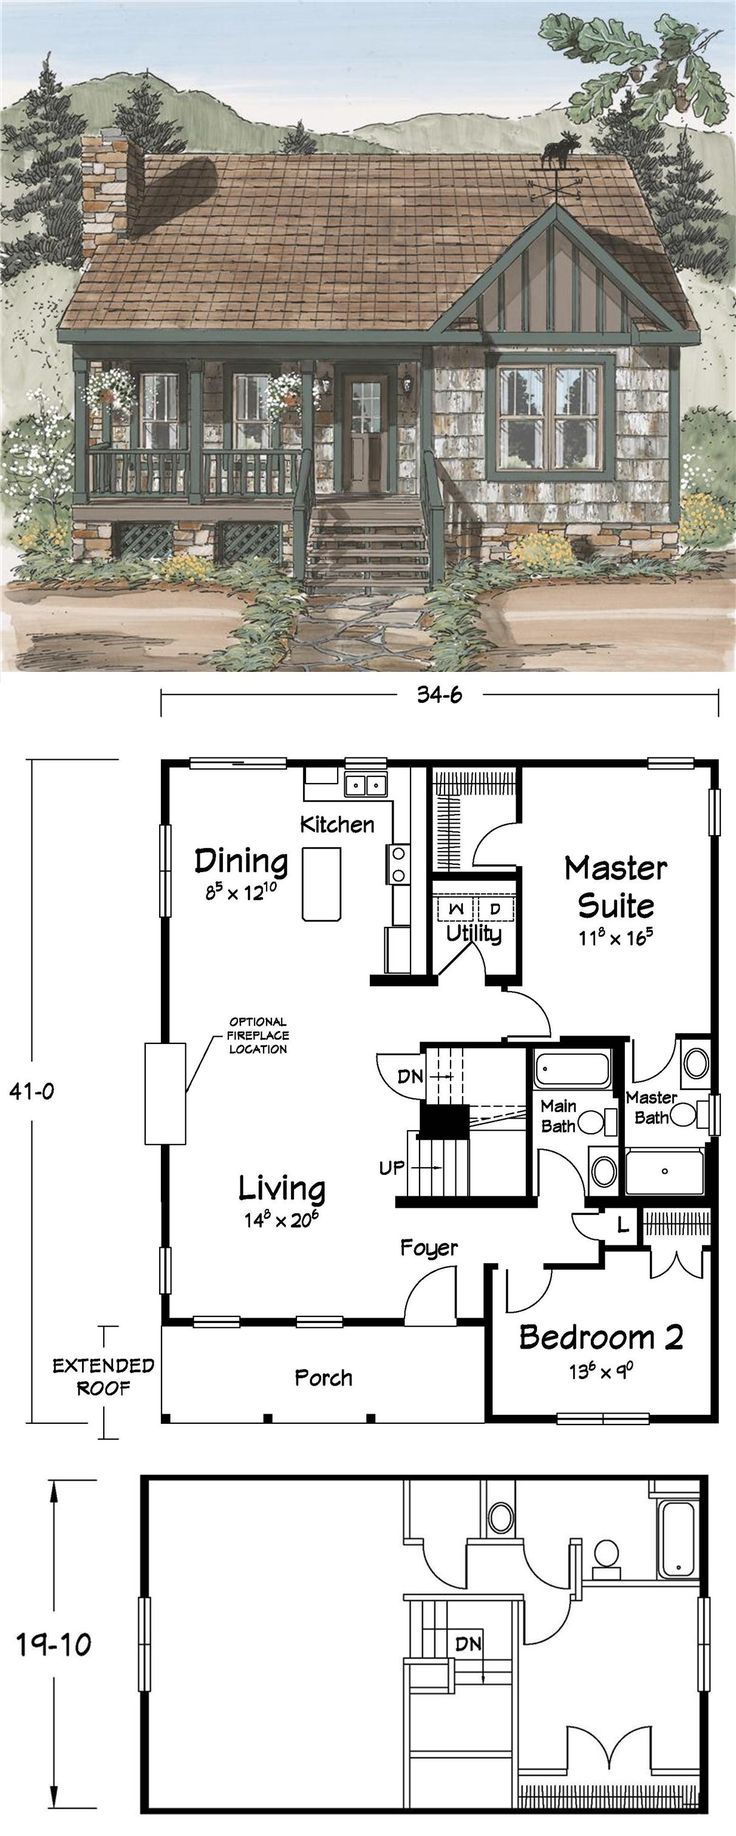 Cute floor plans tiny homes pinterest cabin small houses and tiny living - Small house plans ...